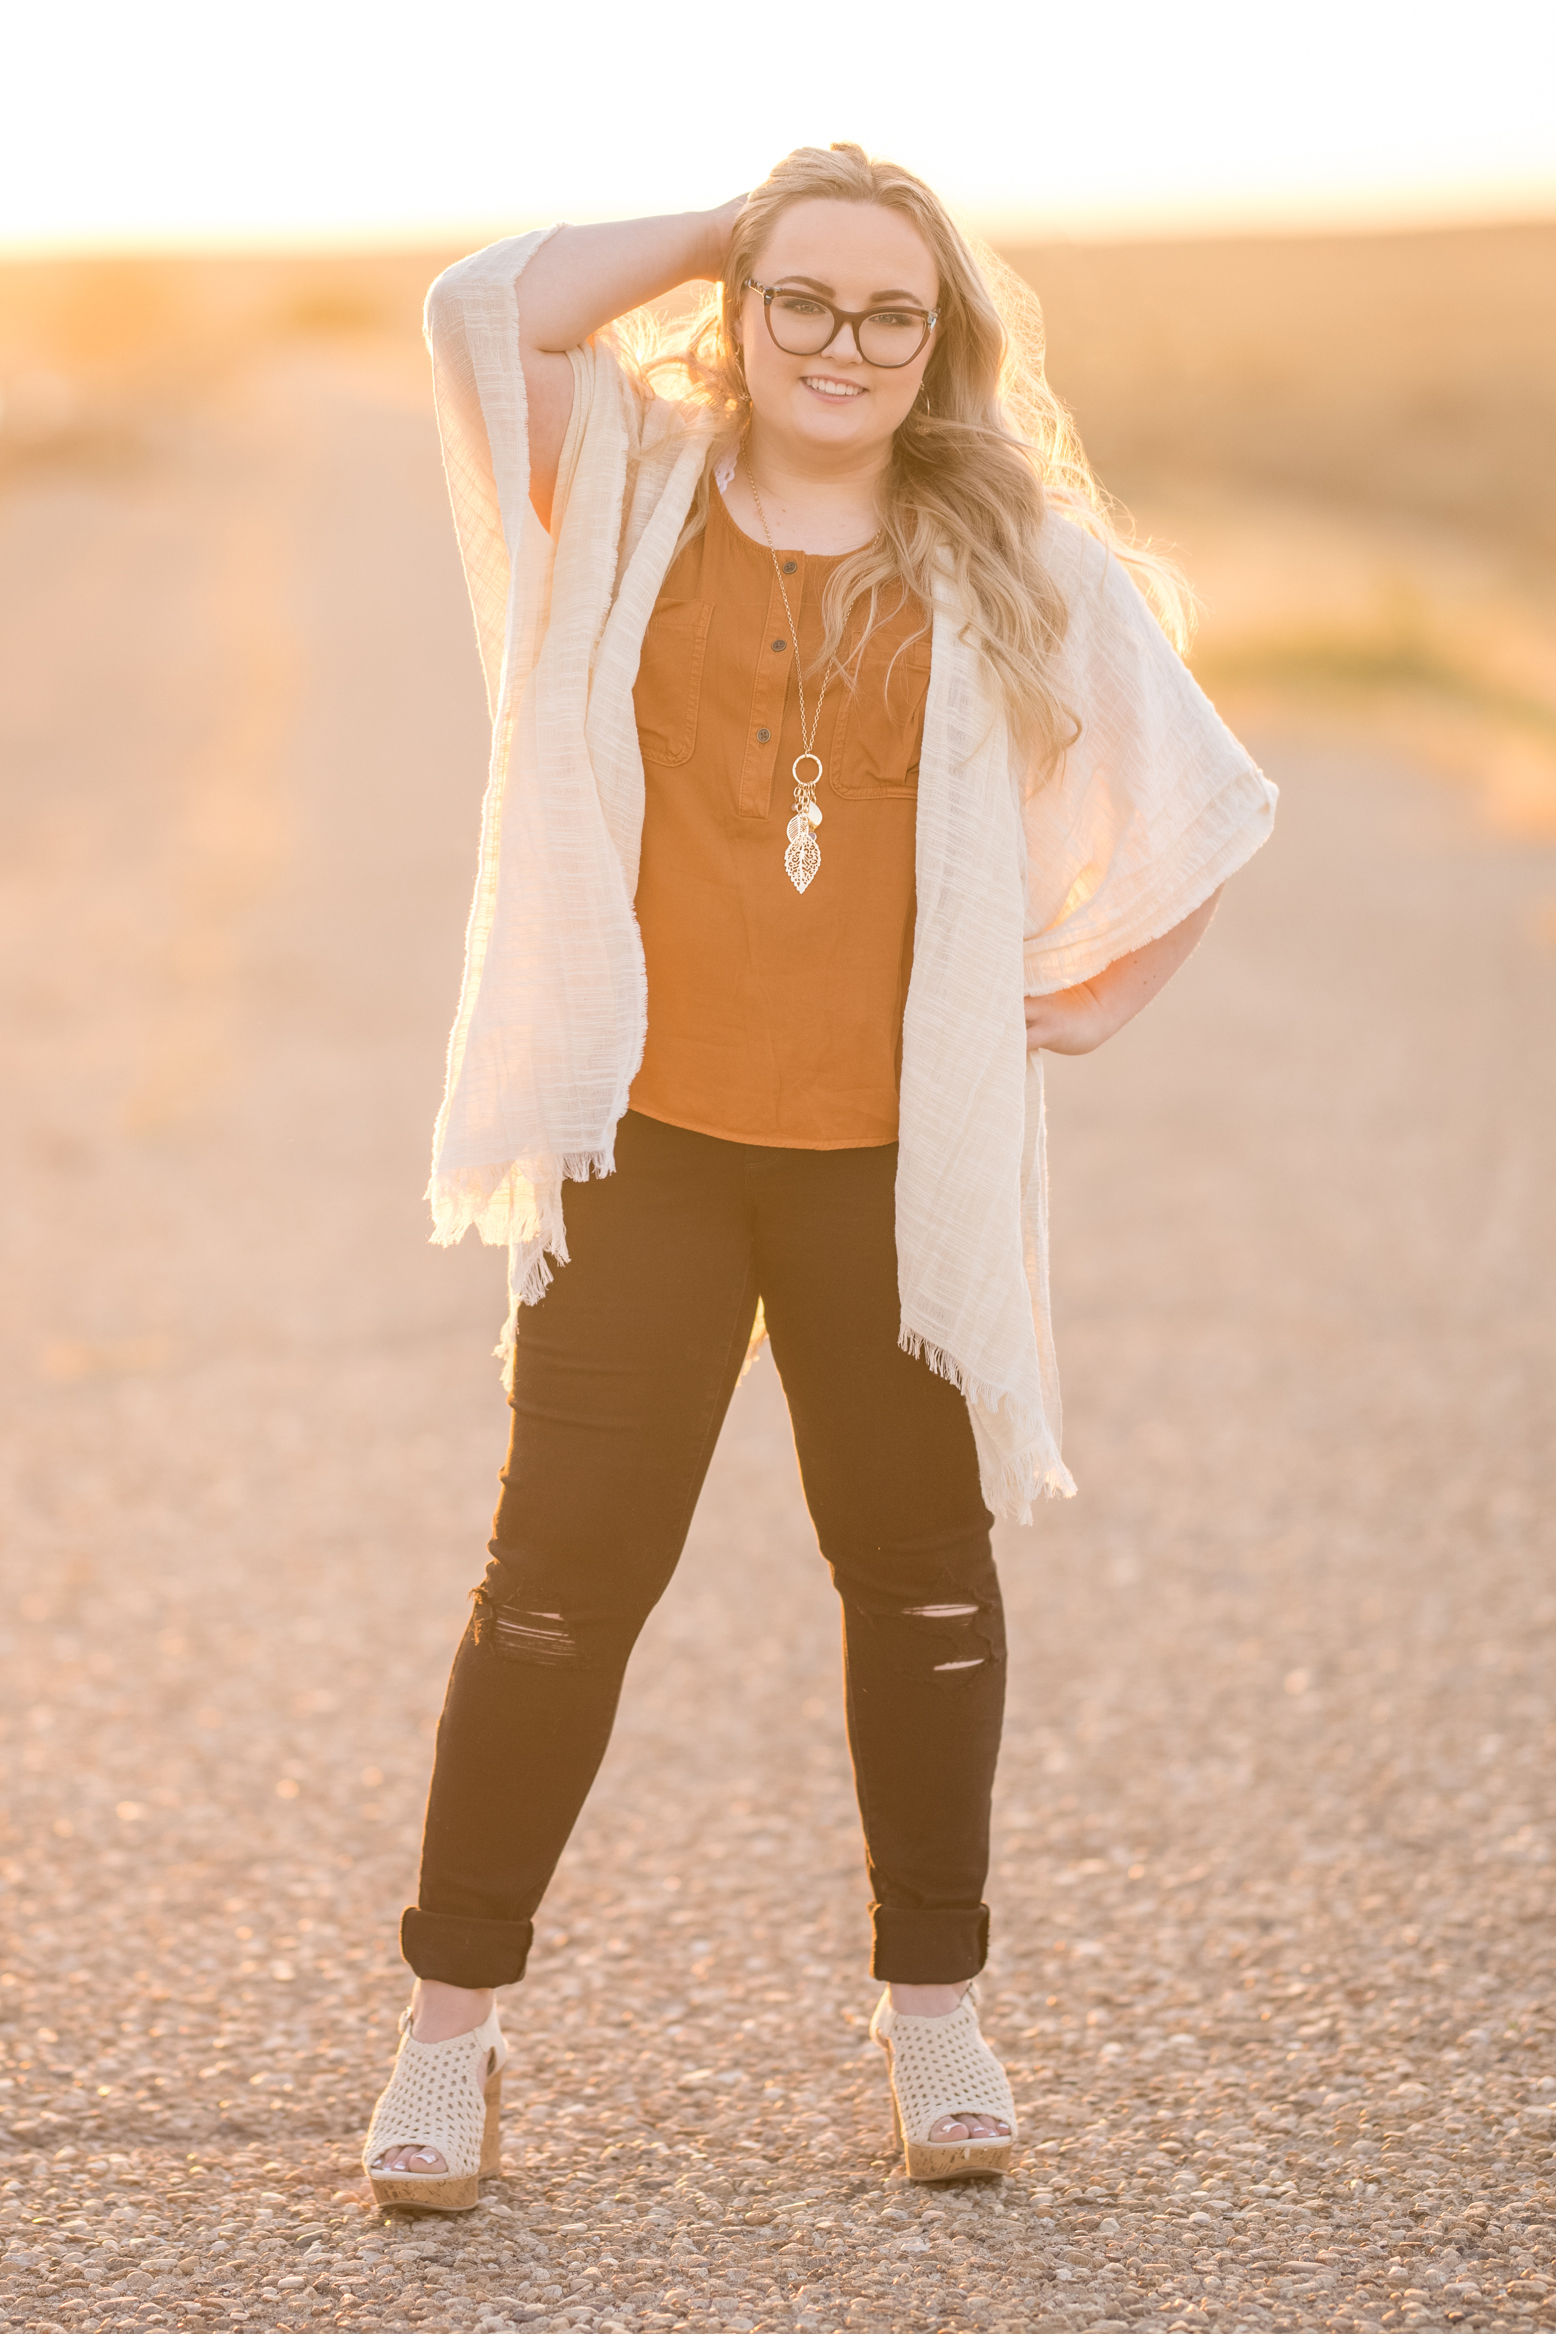 Teen girl in a paved road at sunset wearing black ripped jeans & a cardigan